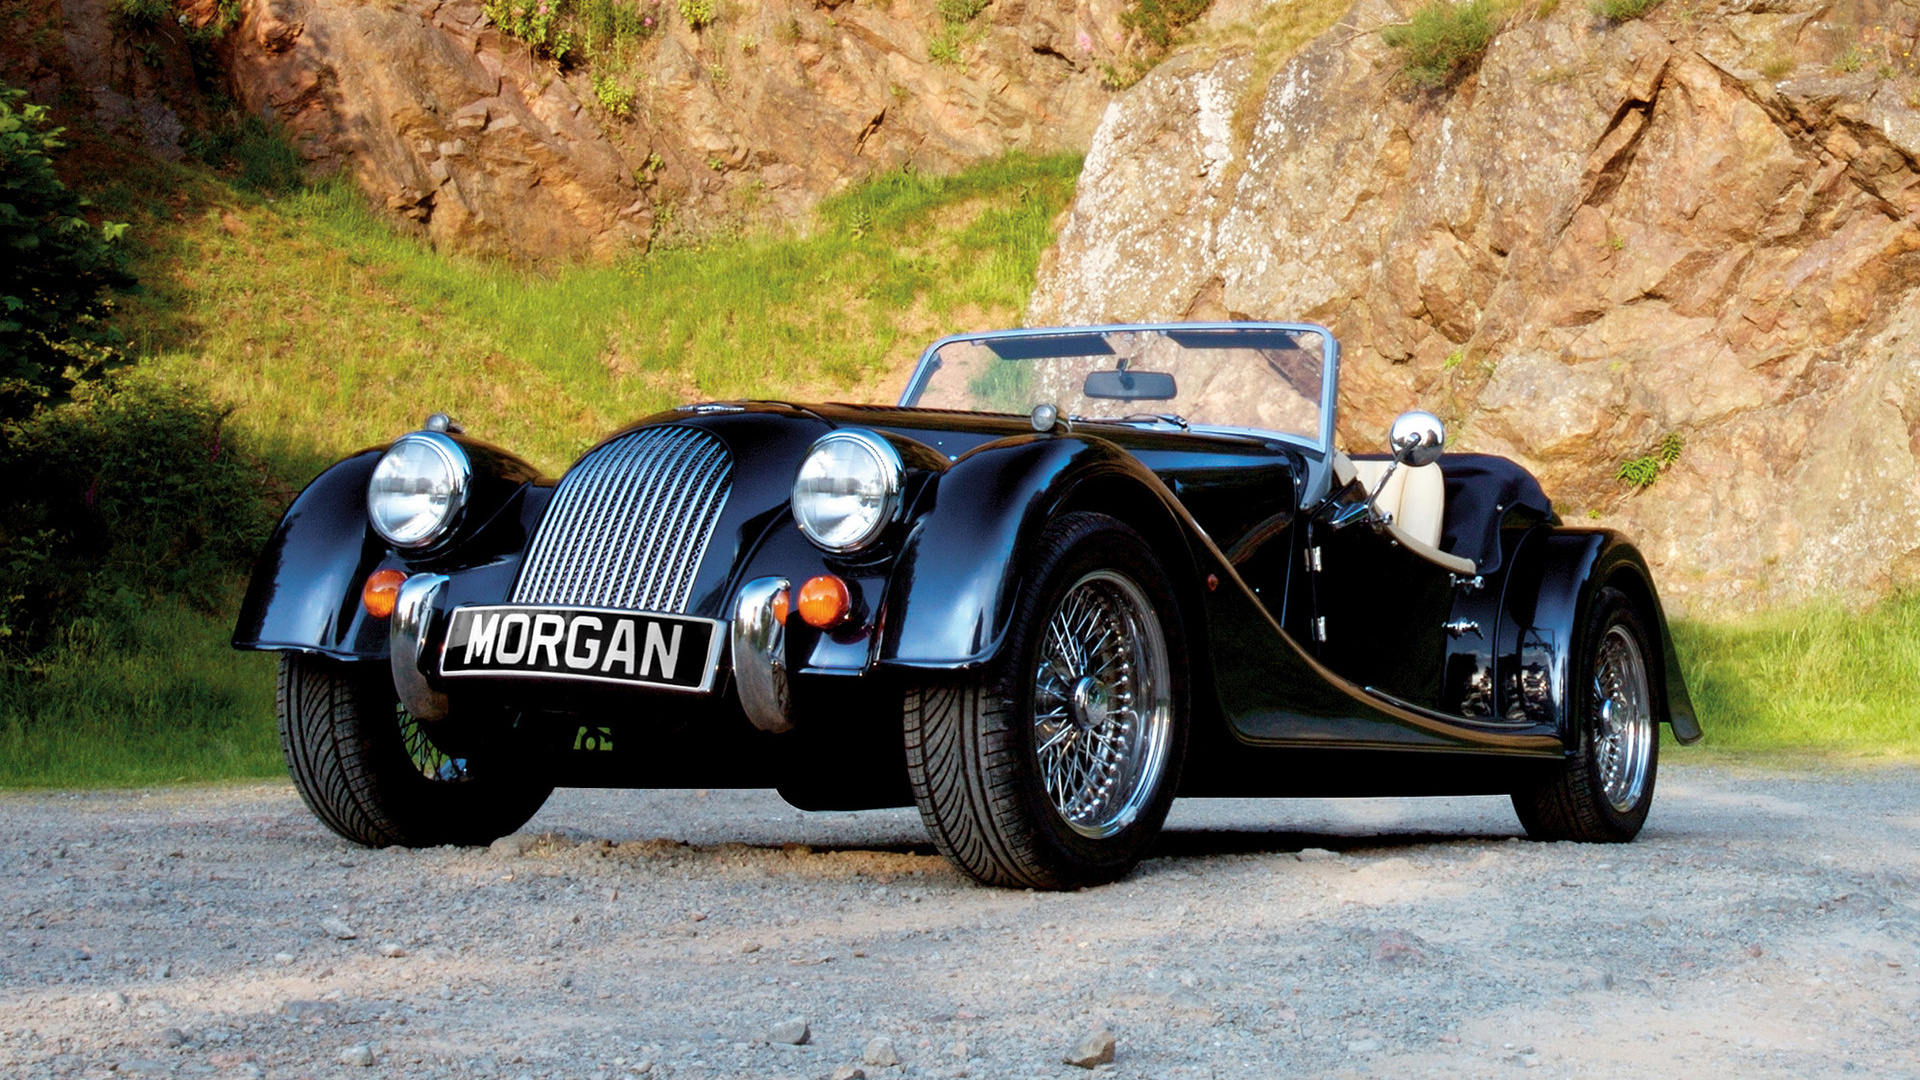 Gmc High Country >> 2004 Morgan Roadster - Wallpapers and HD Images | Car Pixel